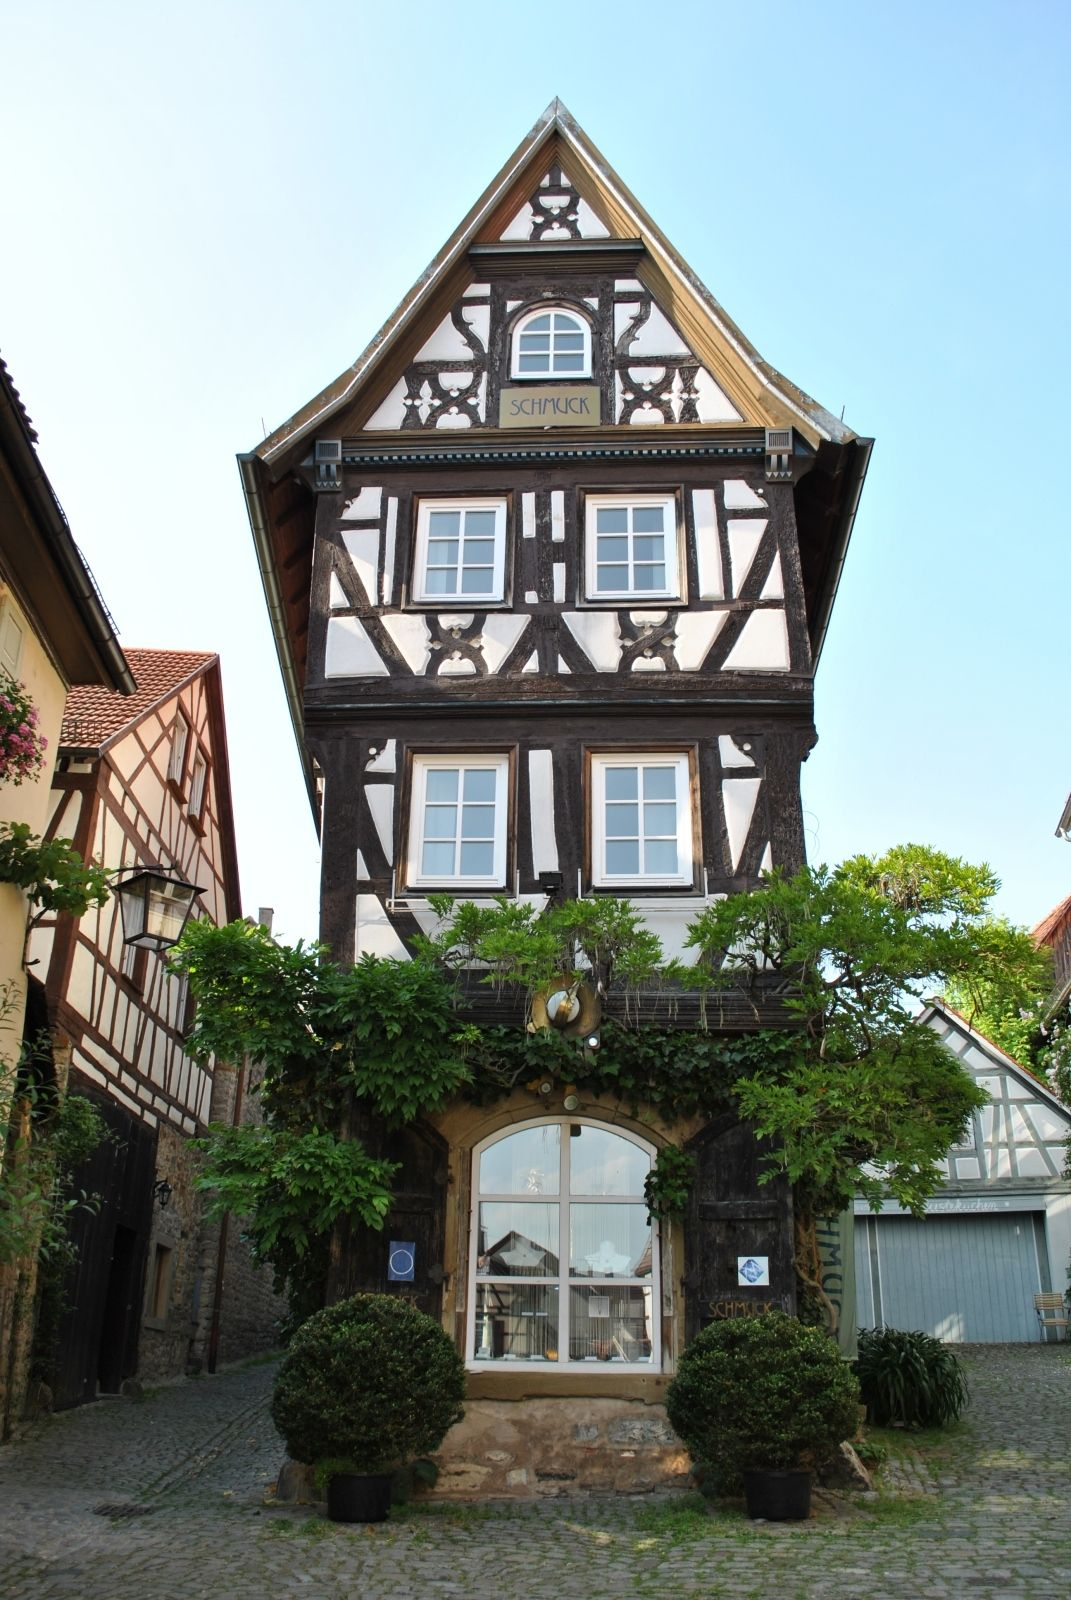 architecture fr nkischges fachwerkhaus timbered house in bad wimpfen germany holzhaus. Black Bedroom Furniture Sets. Home Design Ideas